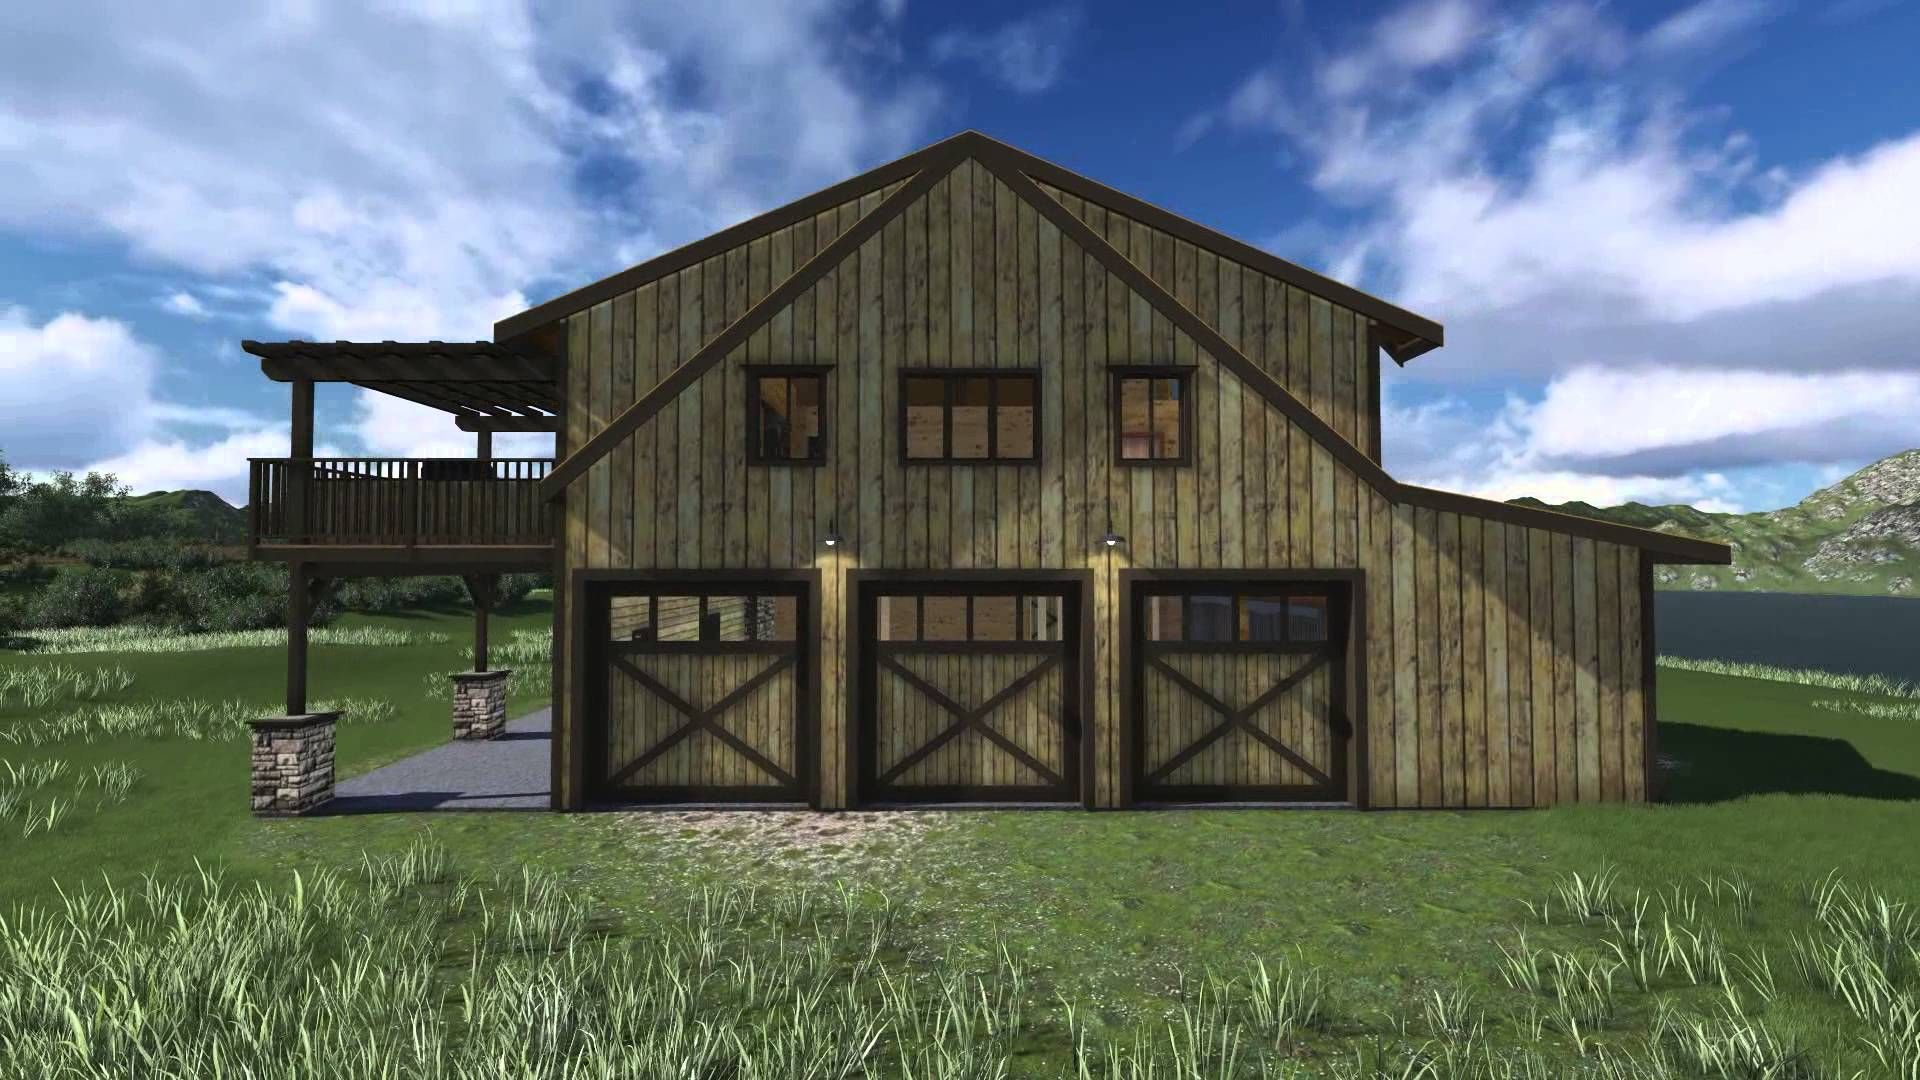 Barn Conversions Area Unit A Good Way To Revitalize Old Barns That Otherwise Would Simply Sit Unresto Barn Style House Plans Barn Style House Rustic Barn Homes